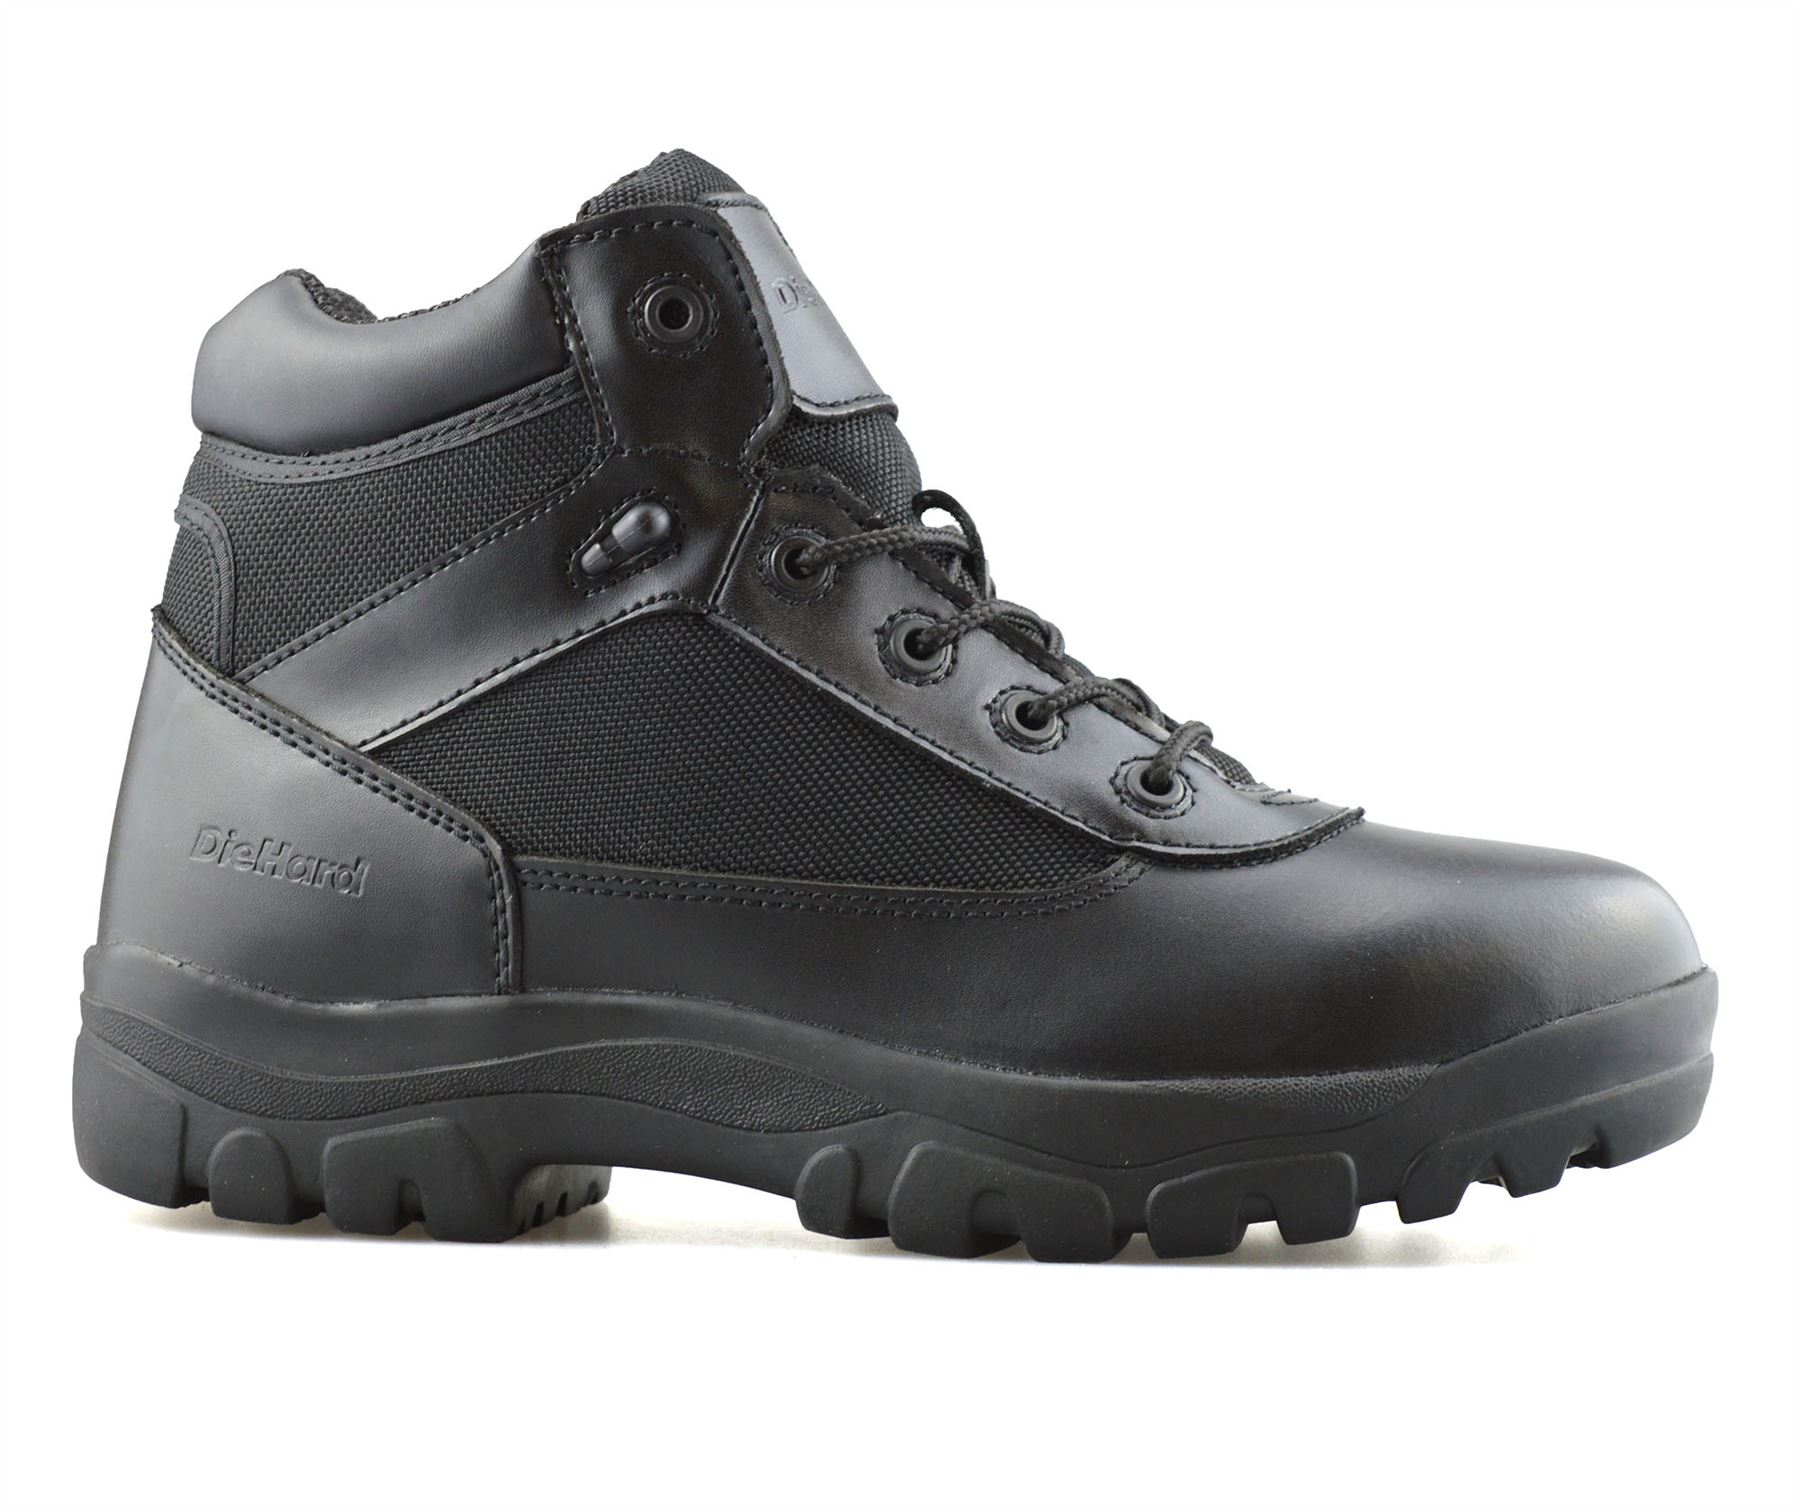 Mens-New-Leather-Military-Army-Combat-Walking-Hiking-Work-Ankle-Boots-Shoes-Size thumbnail 12